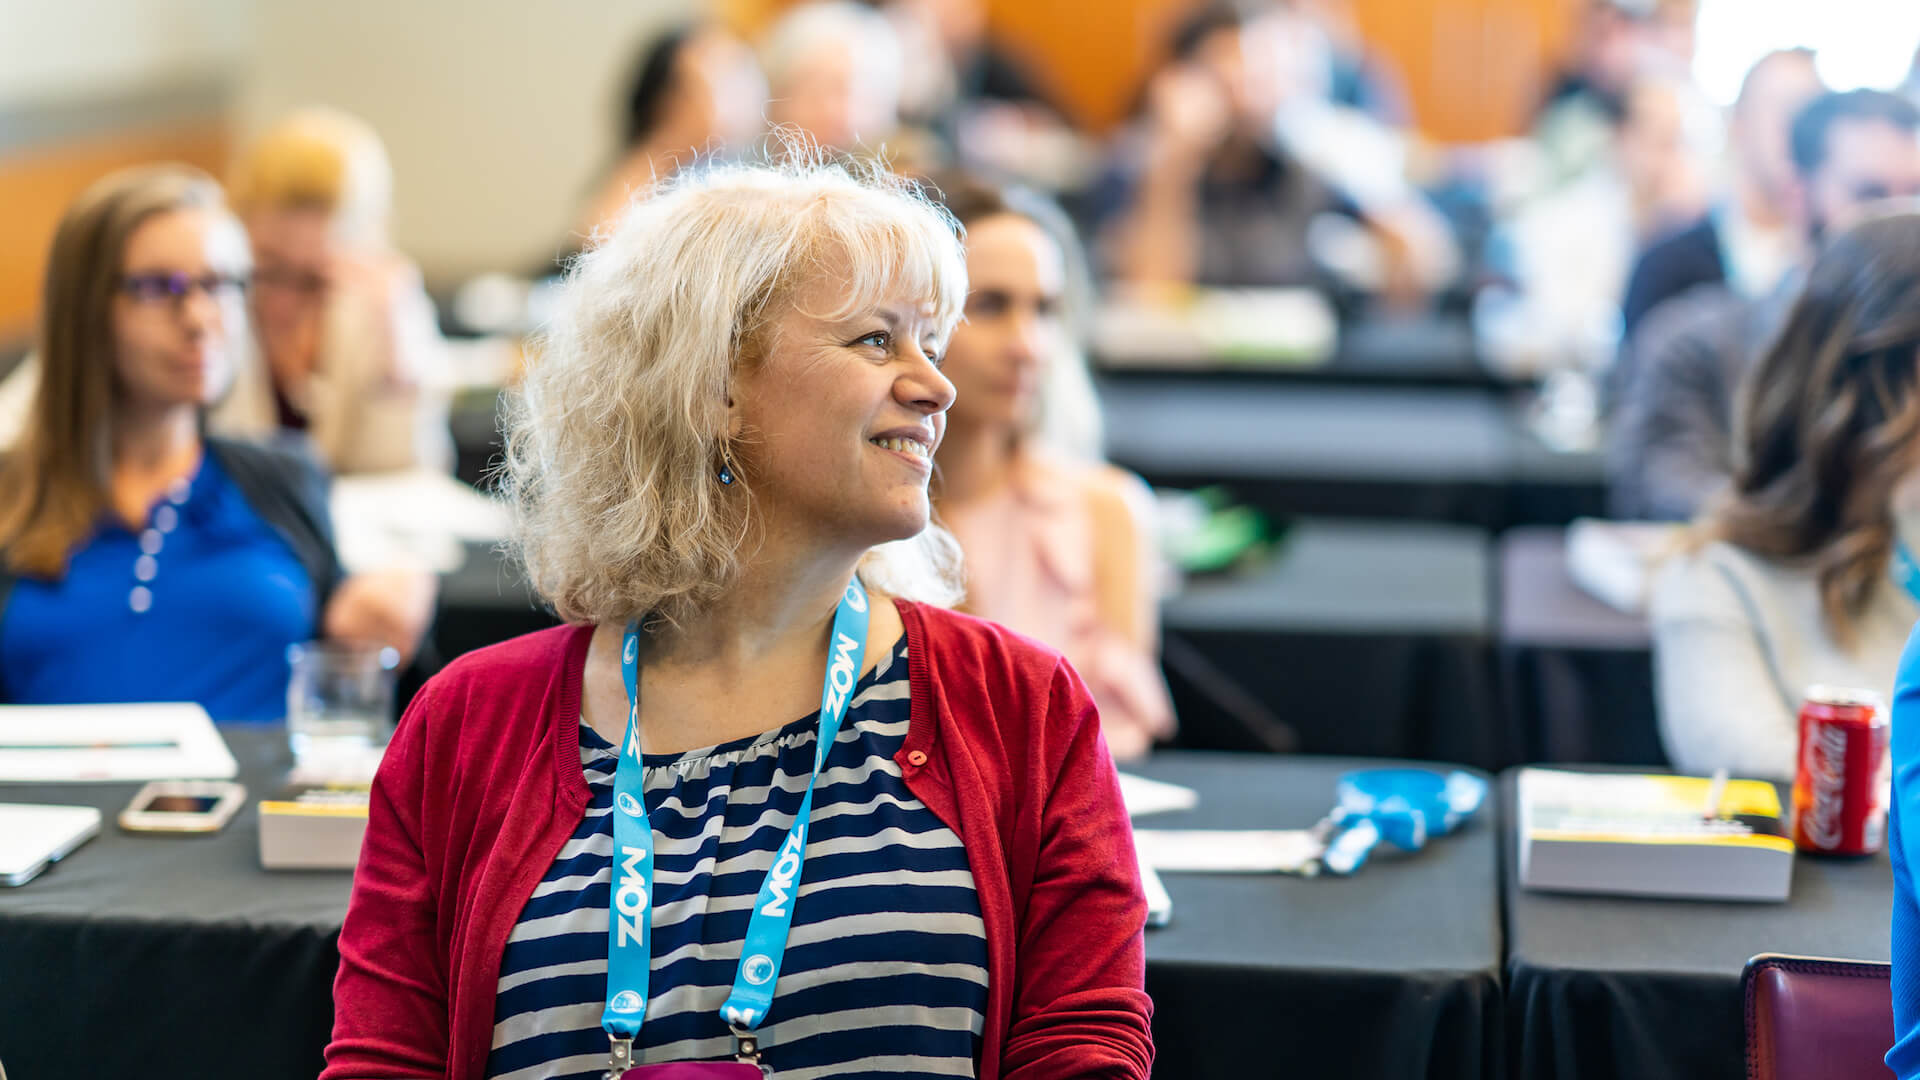 SMX East Super Early Bird Rates Expire Soon